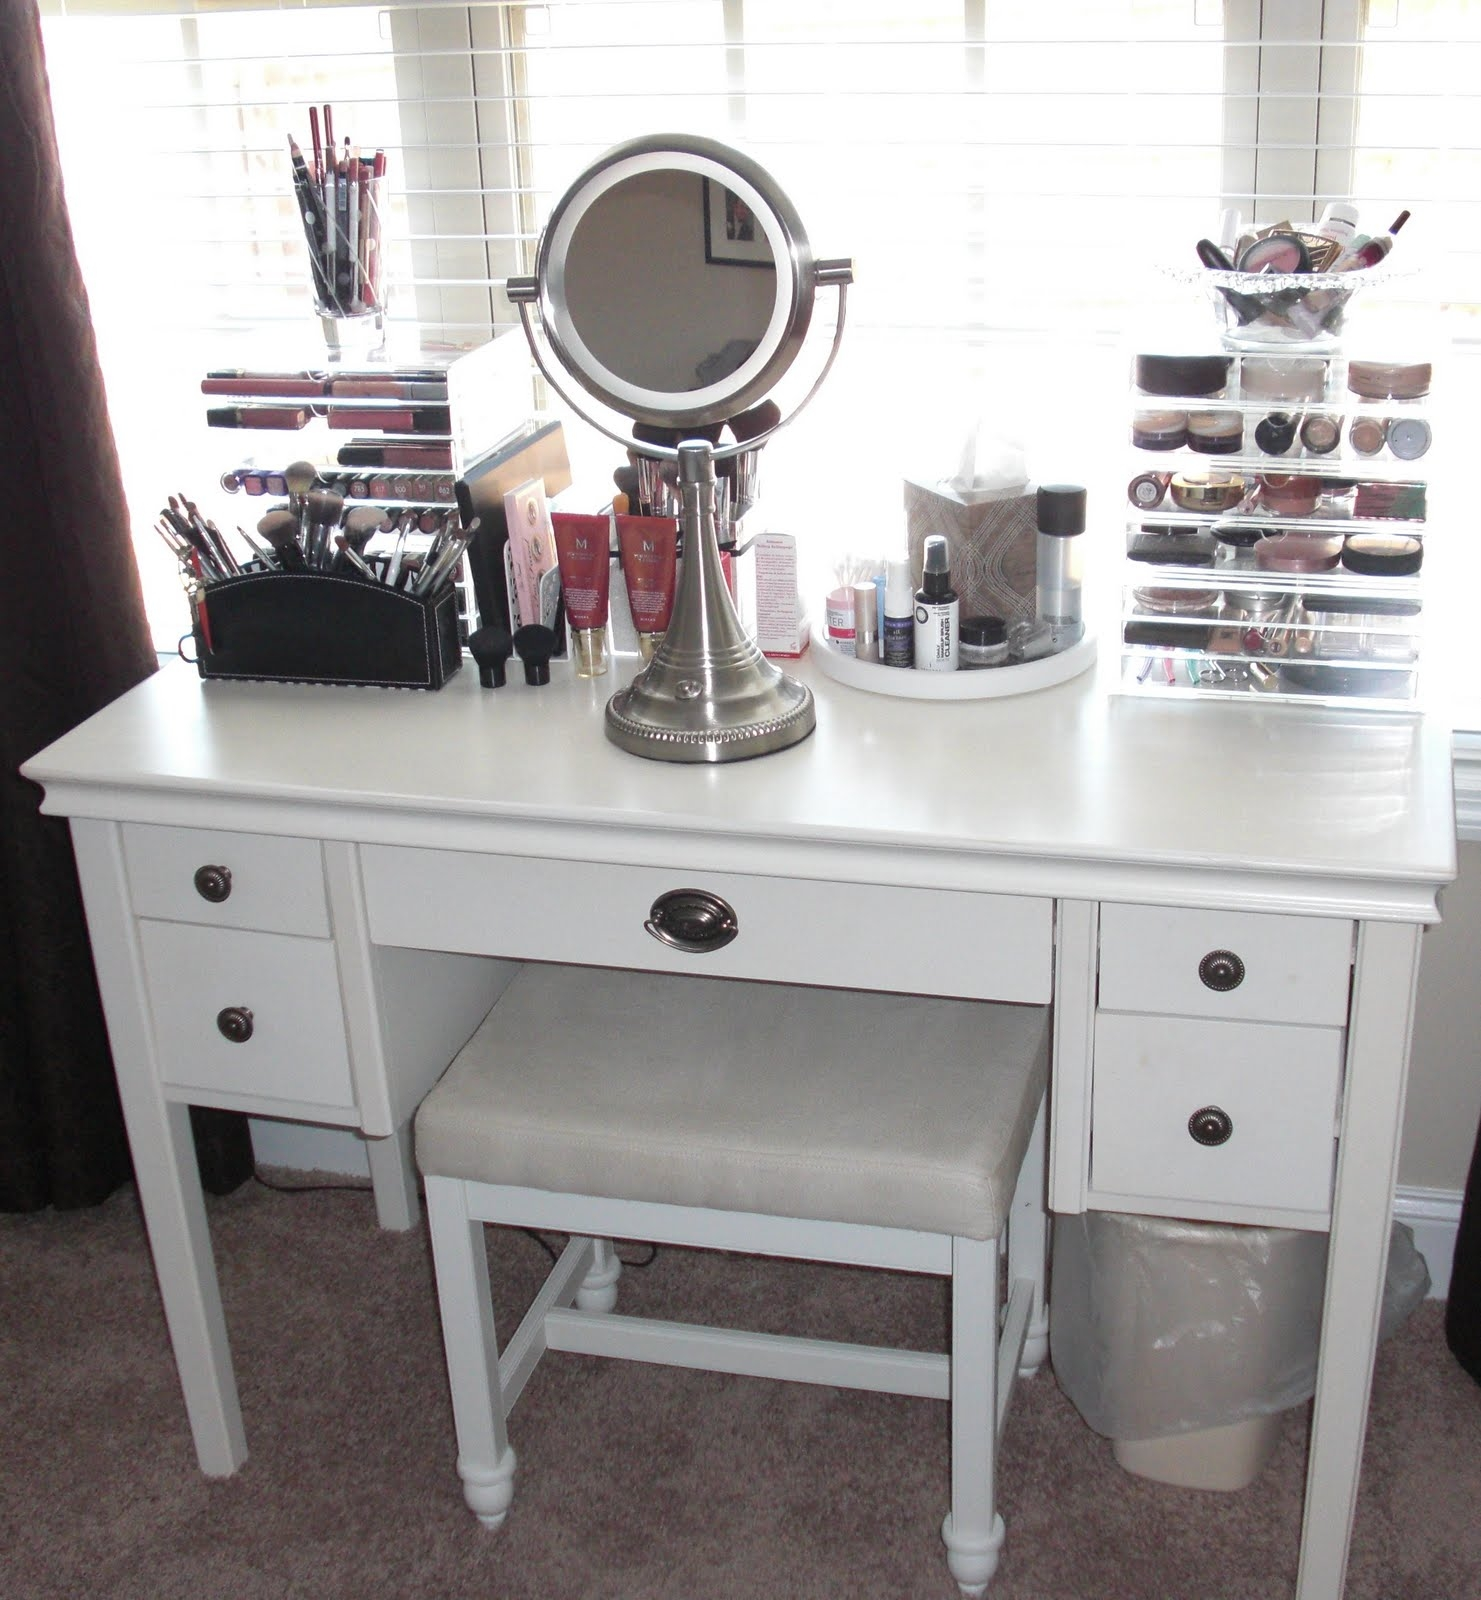 Makeup Storage intended for Mirrored Makeup Storage - Bedroom Design Ideas